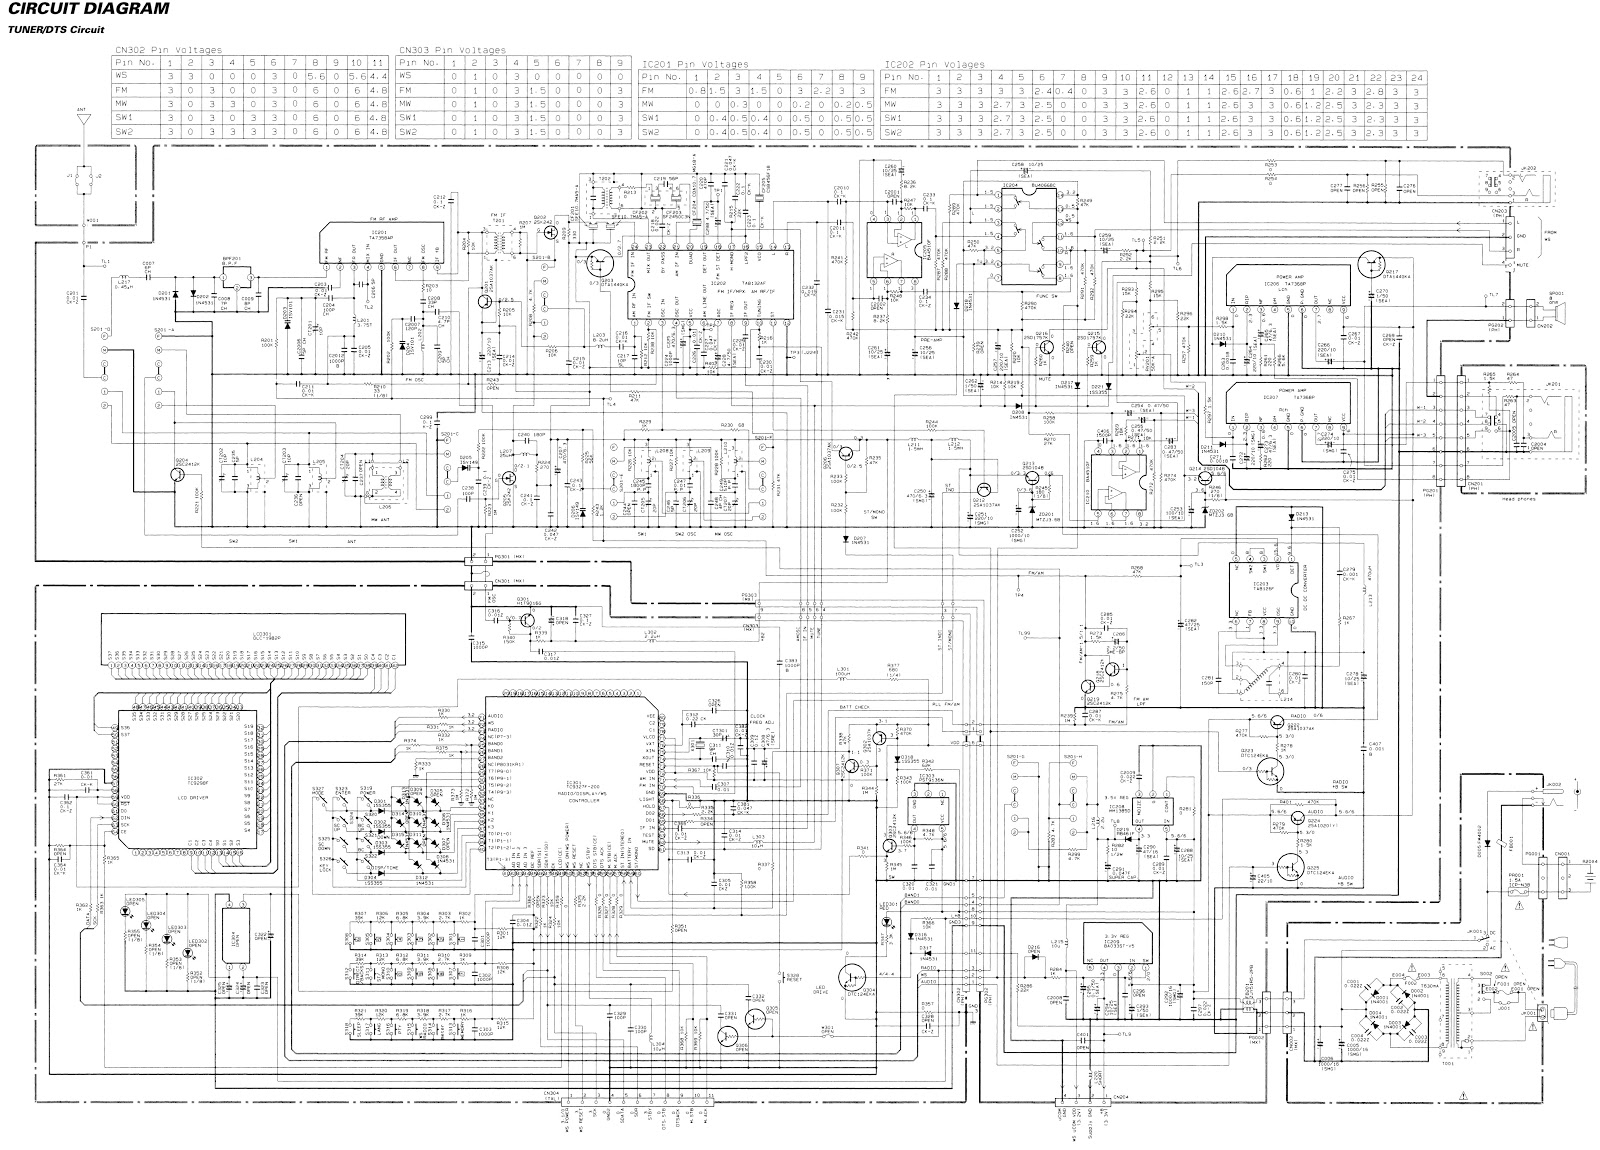 Electro Help 05 16 Is A Typical Application And Example Wiring Diagram Using The Pc1002 Circuit Schematic